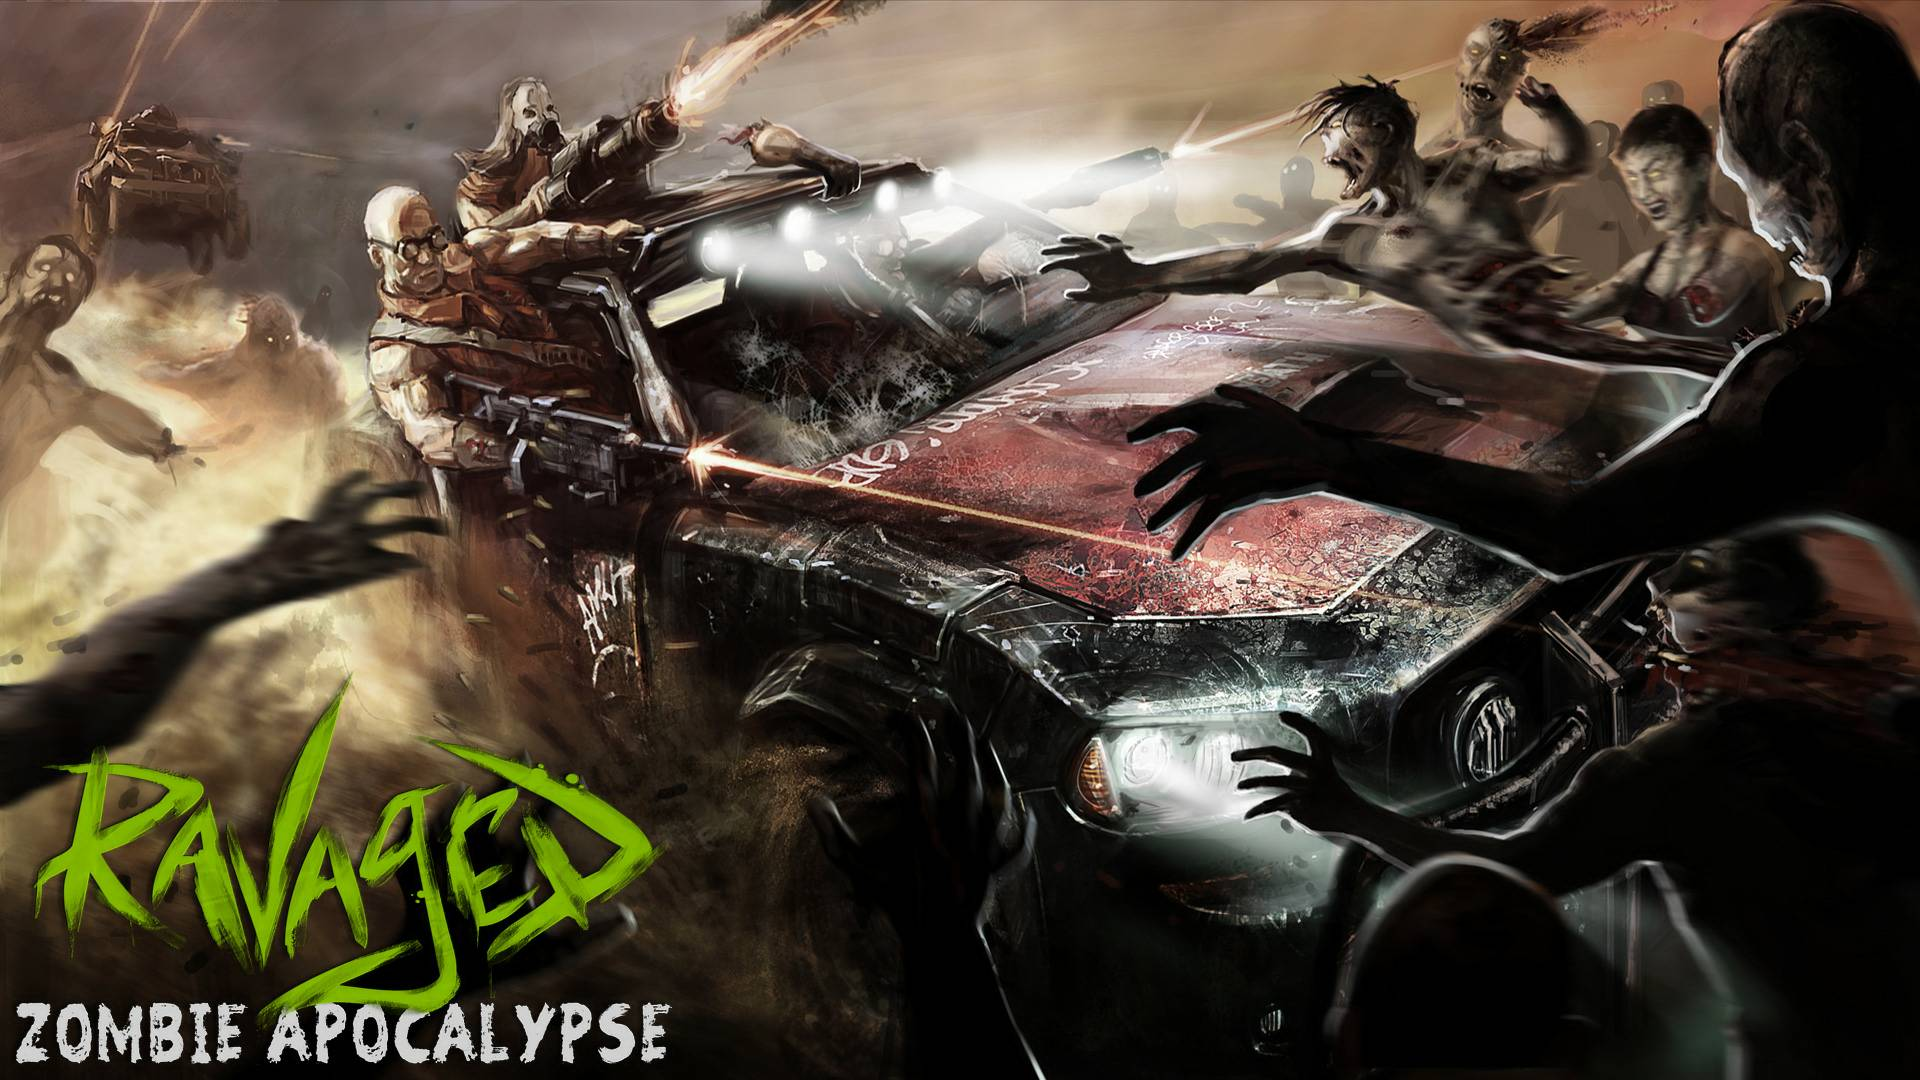 Ravaged Zombie Apocalypse ( Steam Key / Region Free )